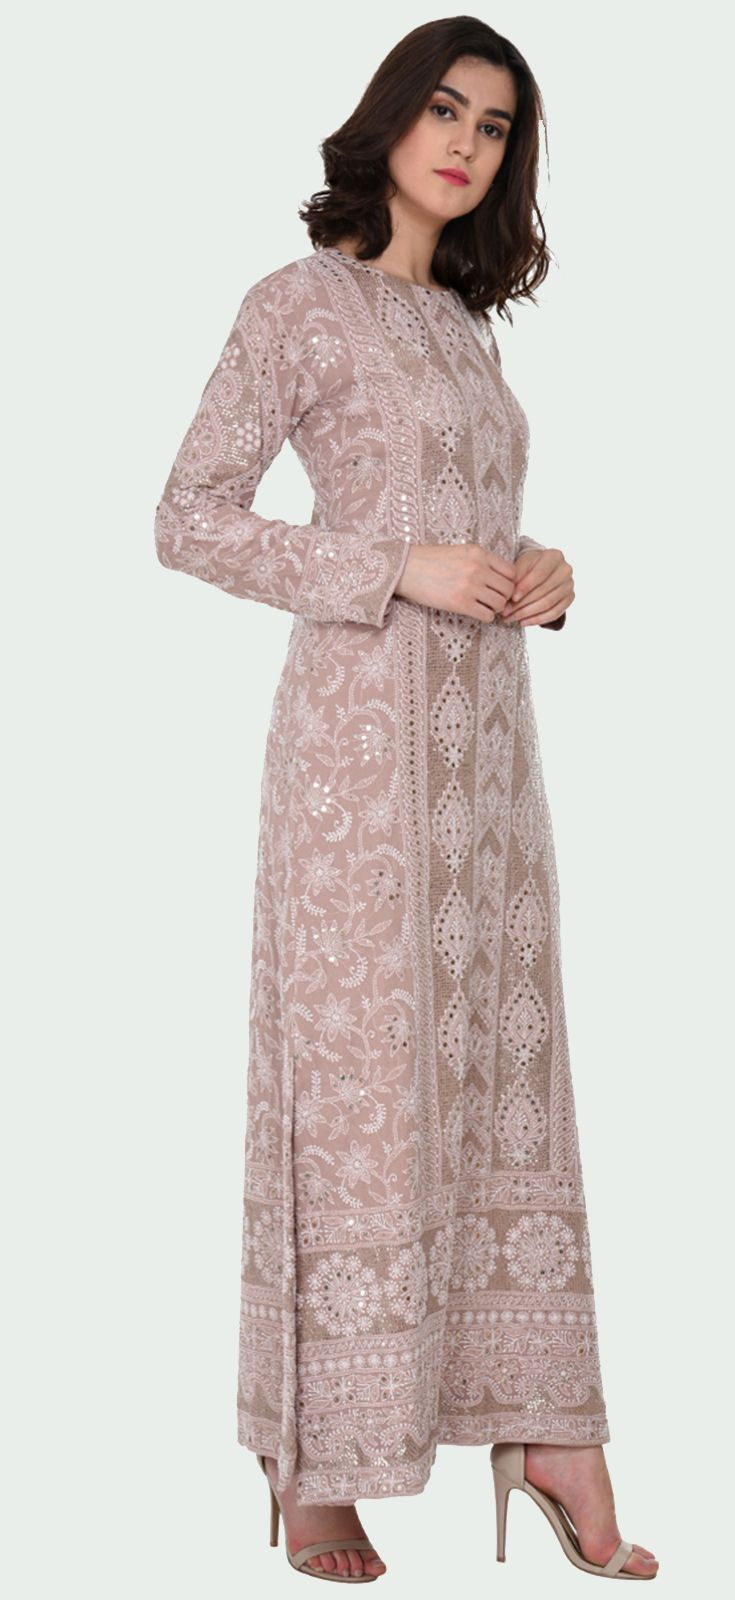 ae08b385d3 Hazelnut Chikankari And Kamdani Peshwa Floor Length Suit ...